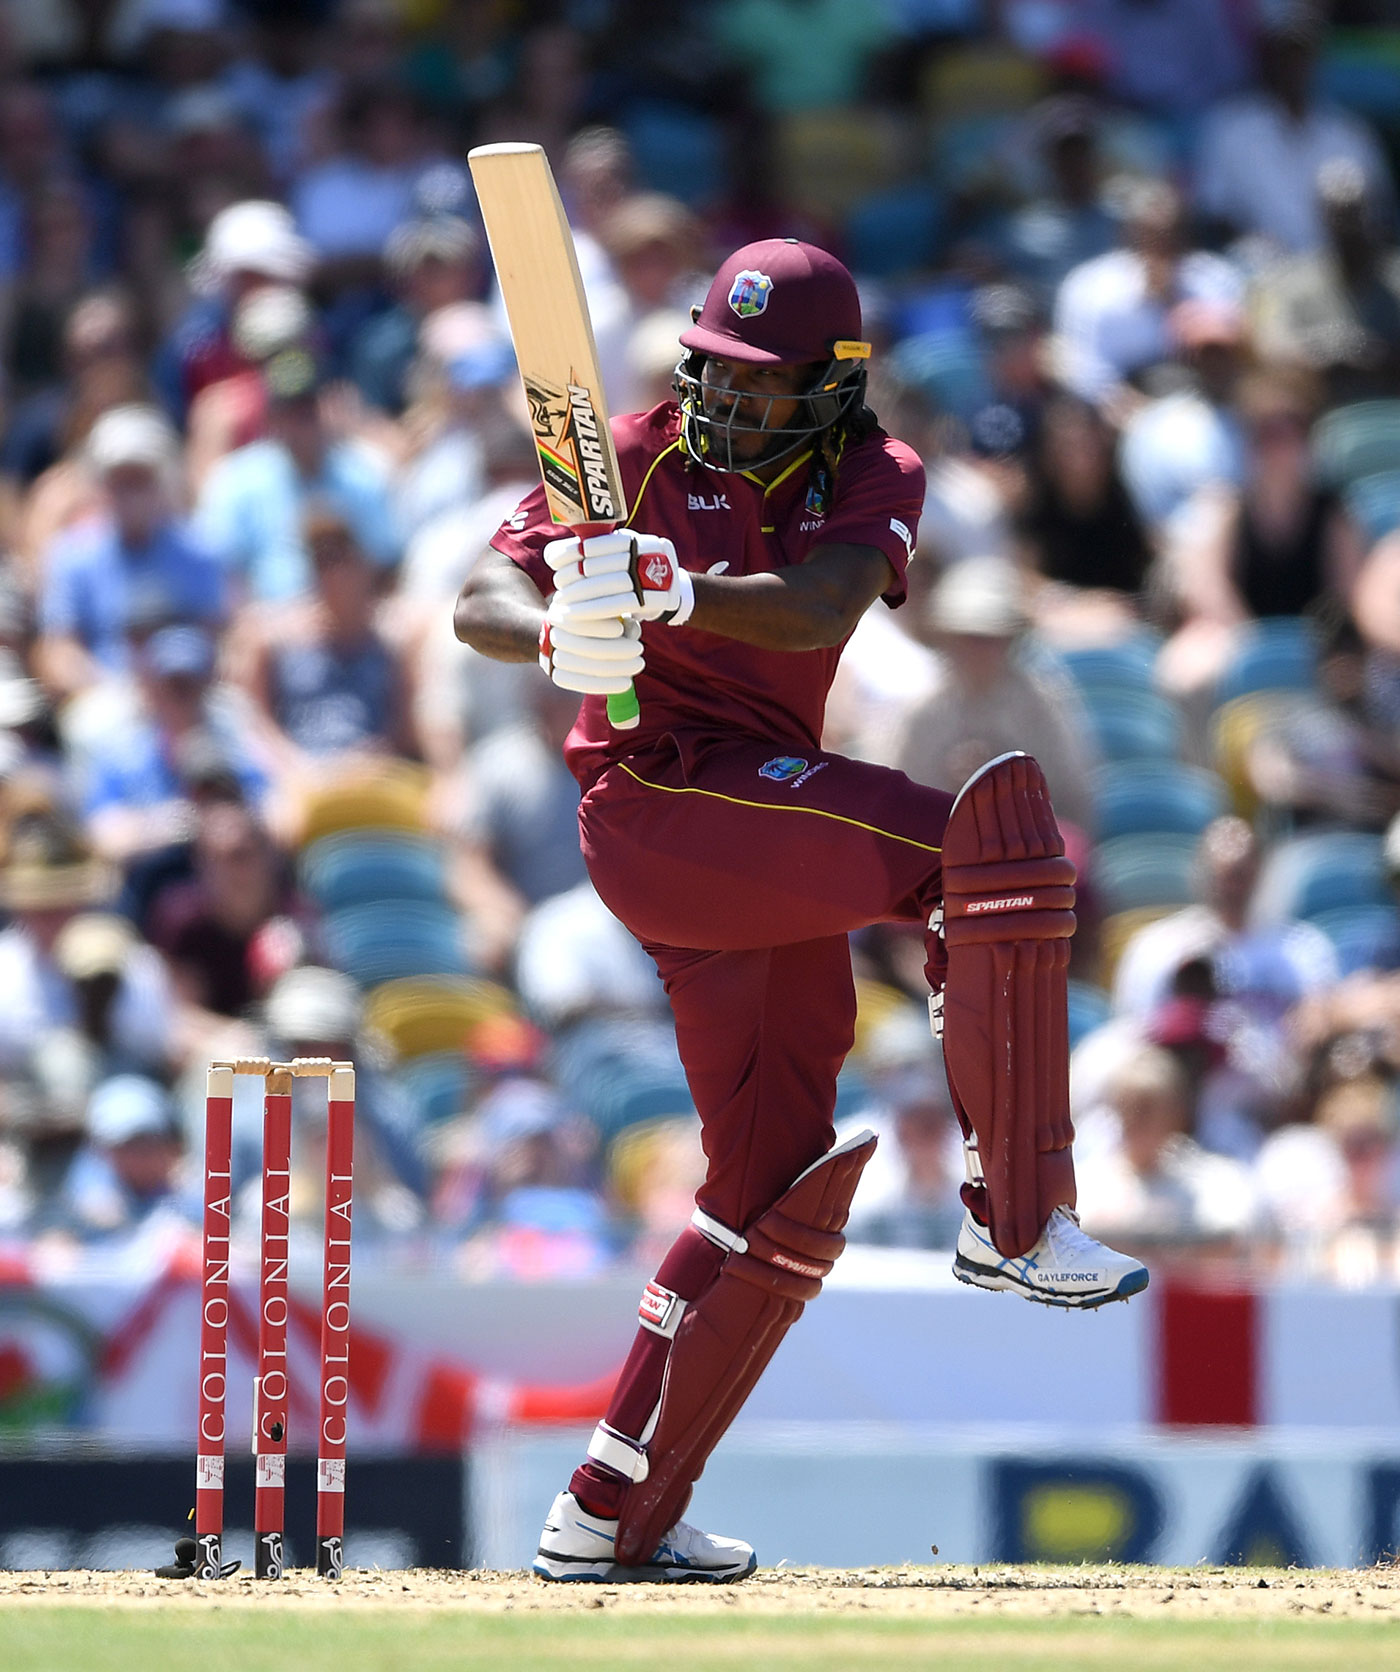 One of my favorite players, Gayle on Pakistan hitter not picked for PSL 6 - Batting with Bimal